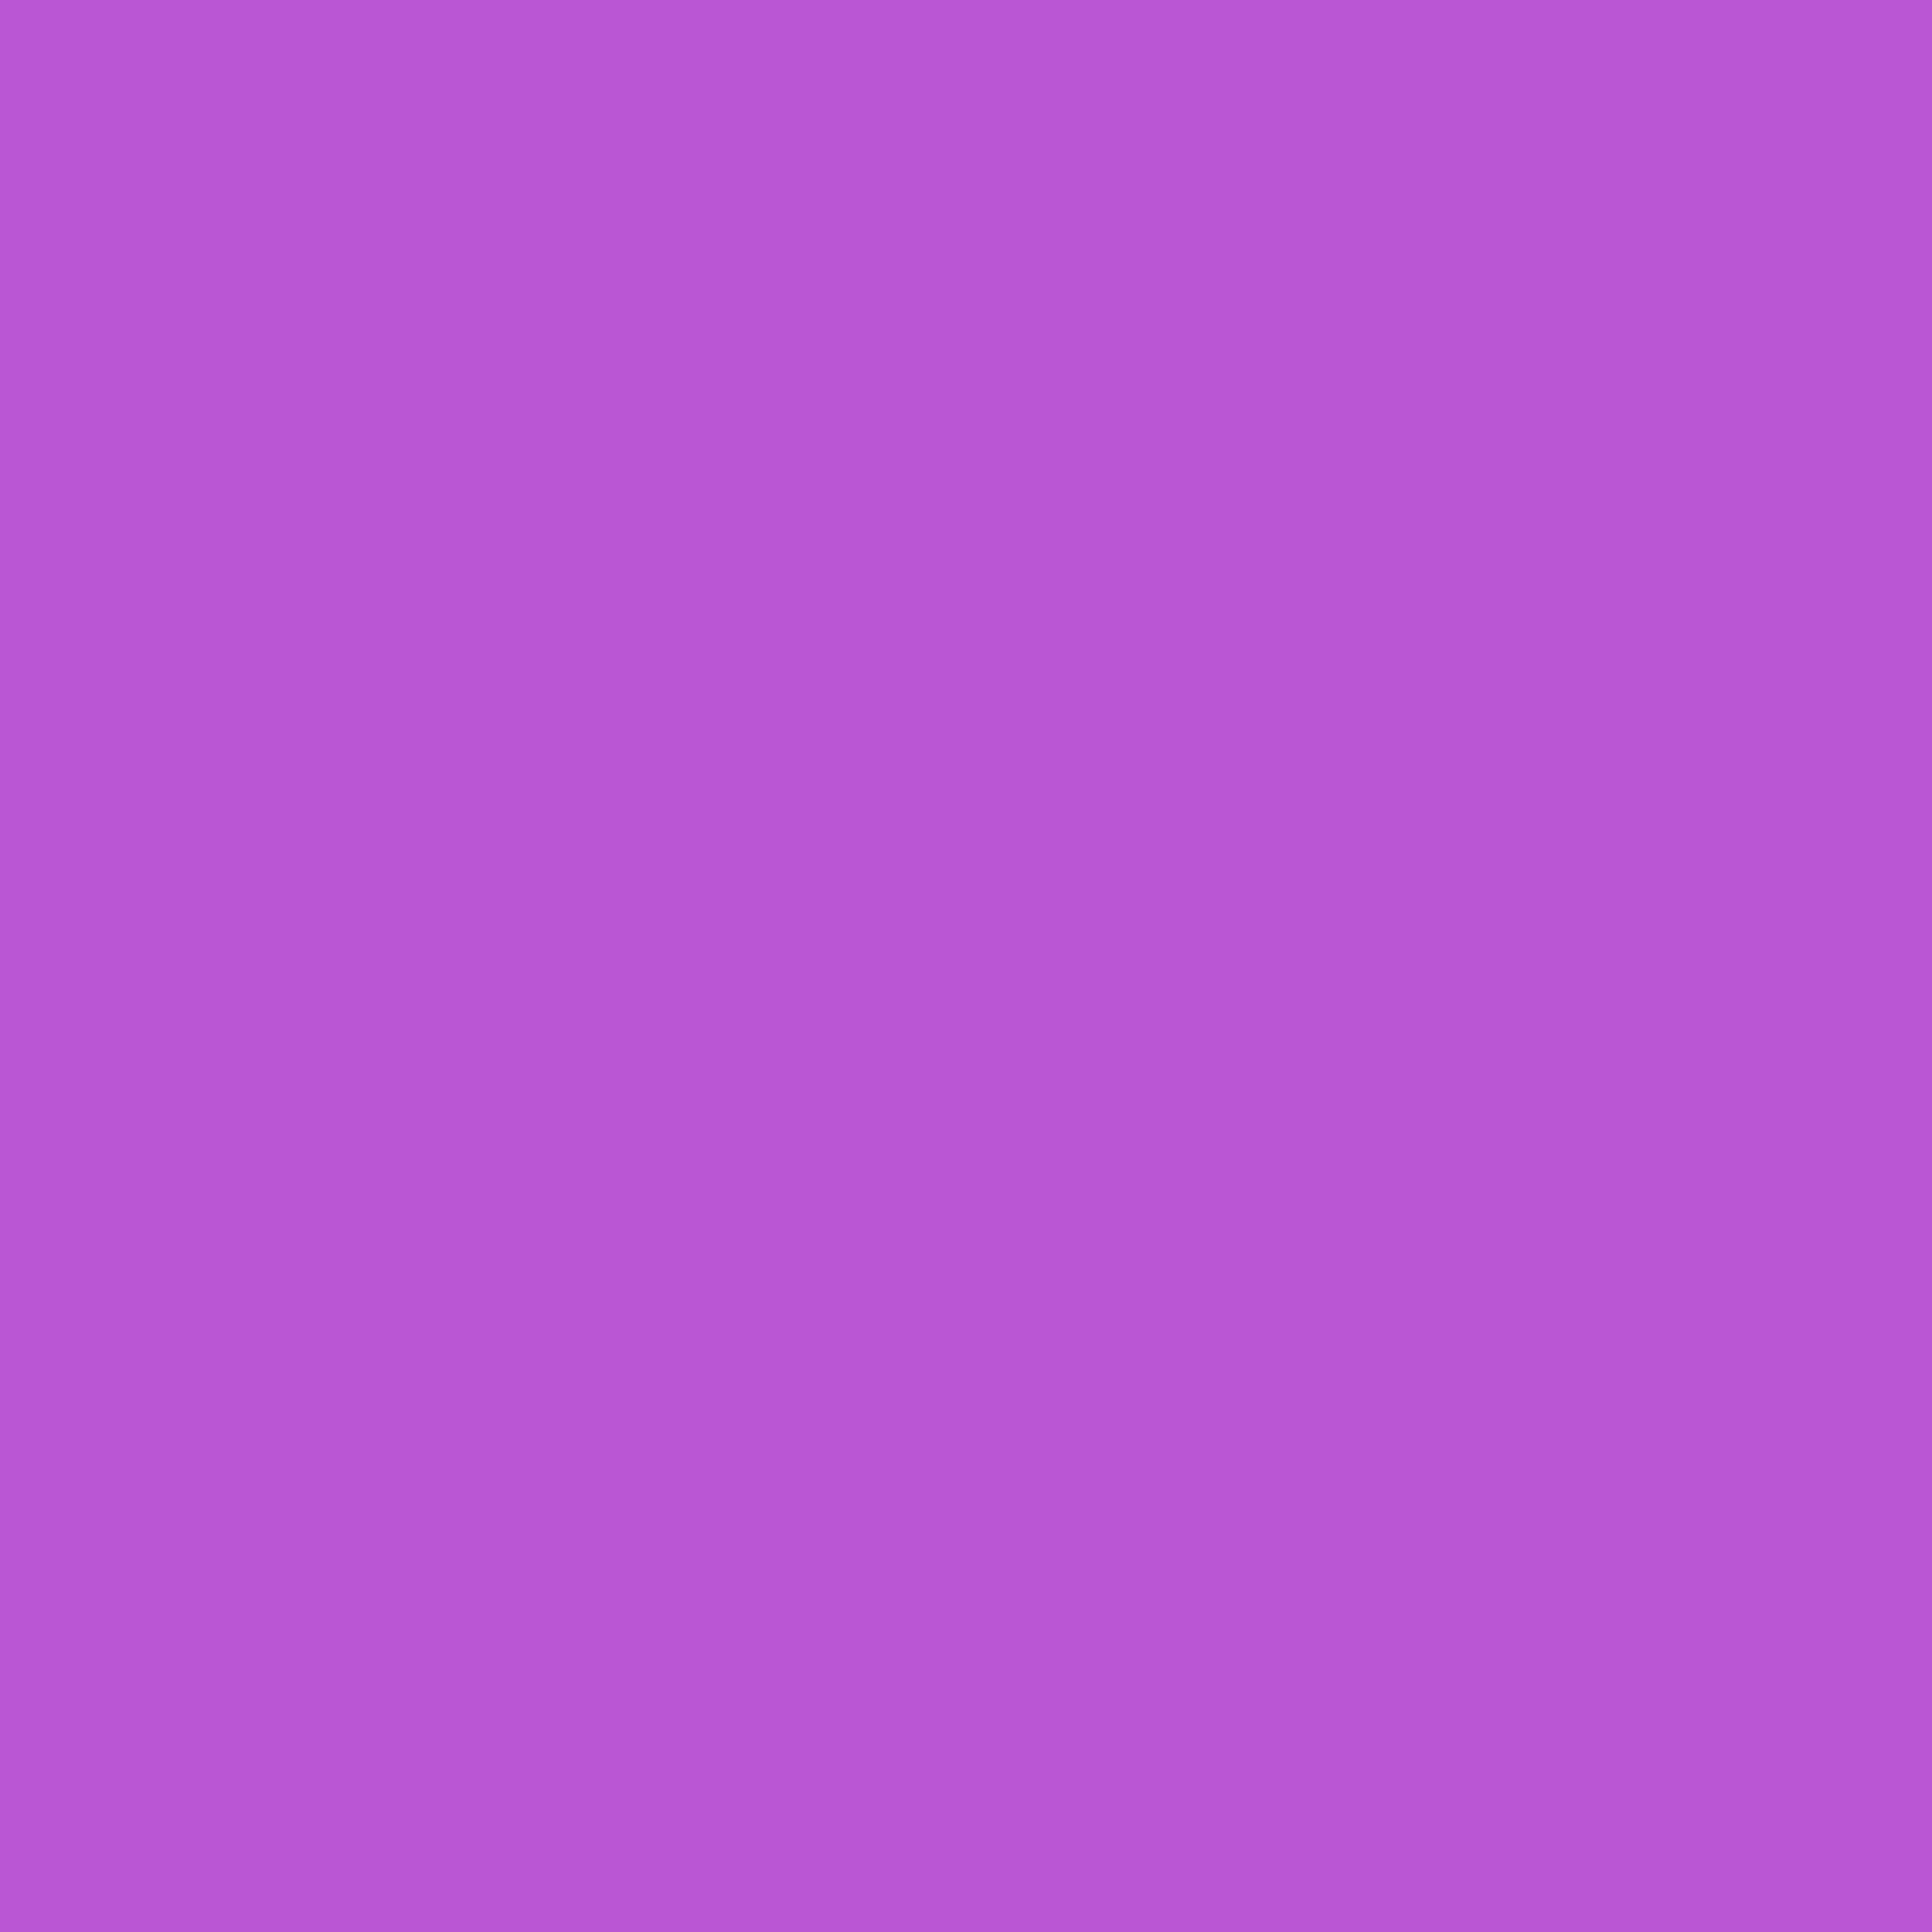 3600x3600 Medium Orchid Solid Color Background